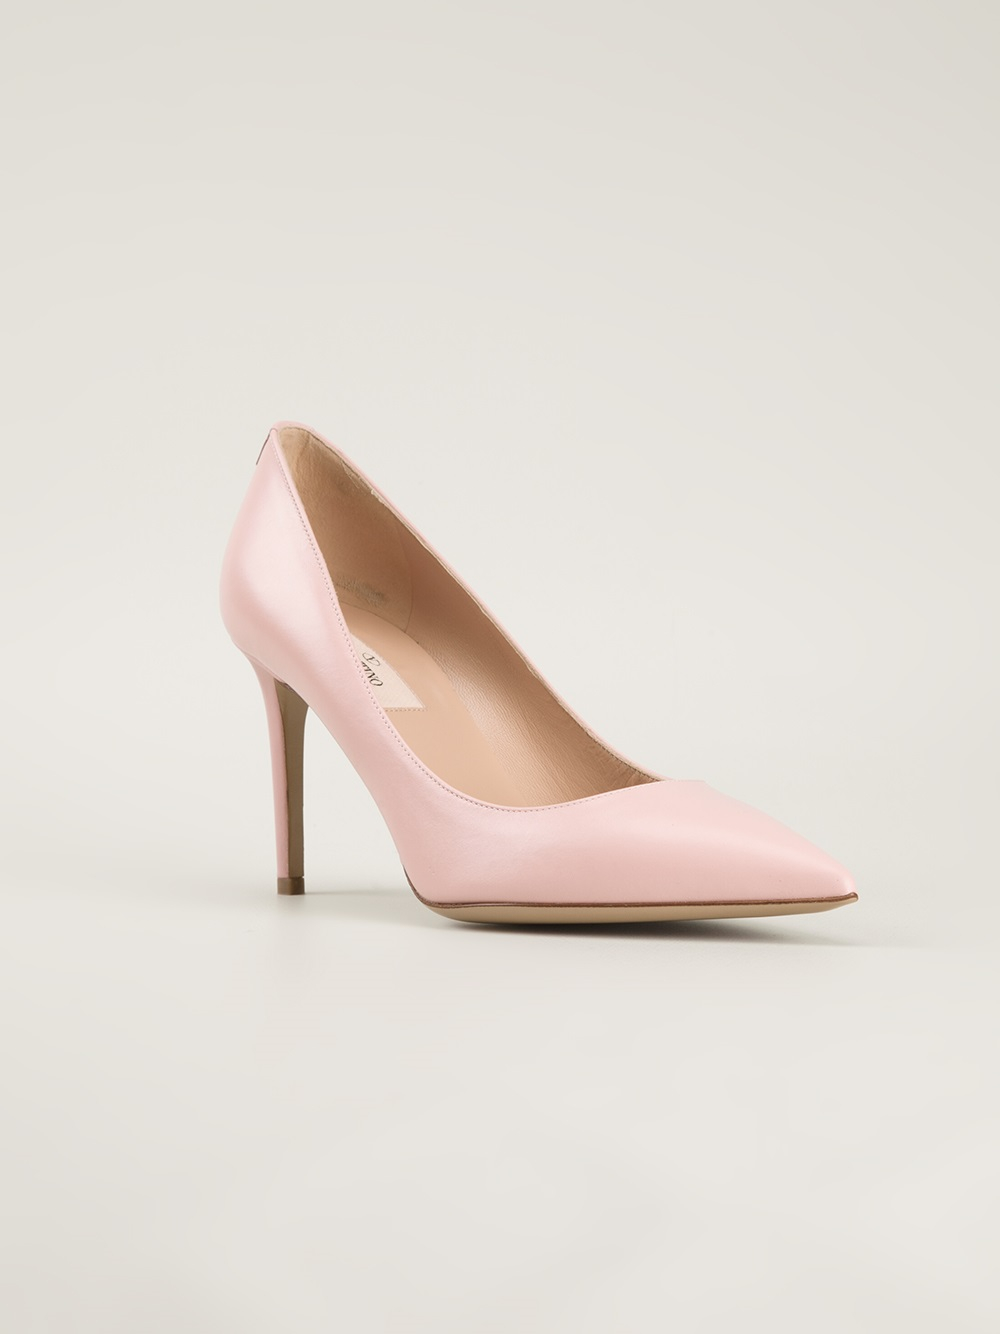 Lyst - Valentino Pointed Toe Pumps in Pink